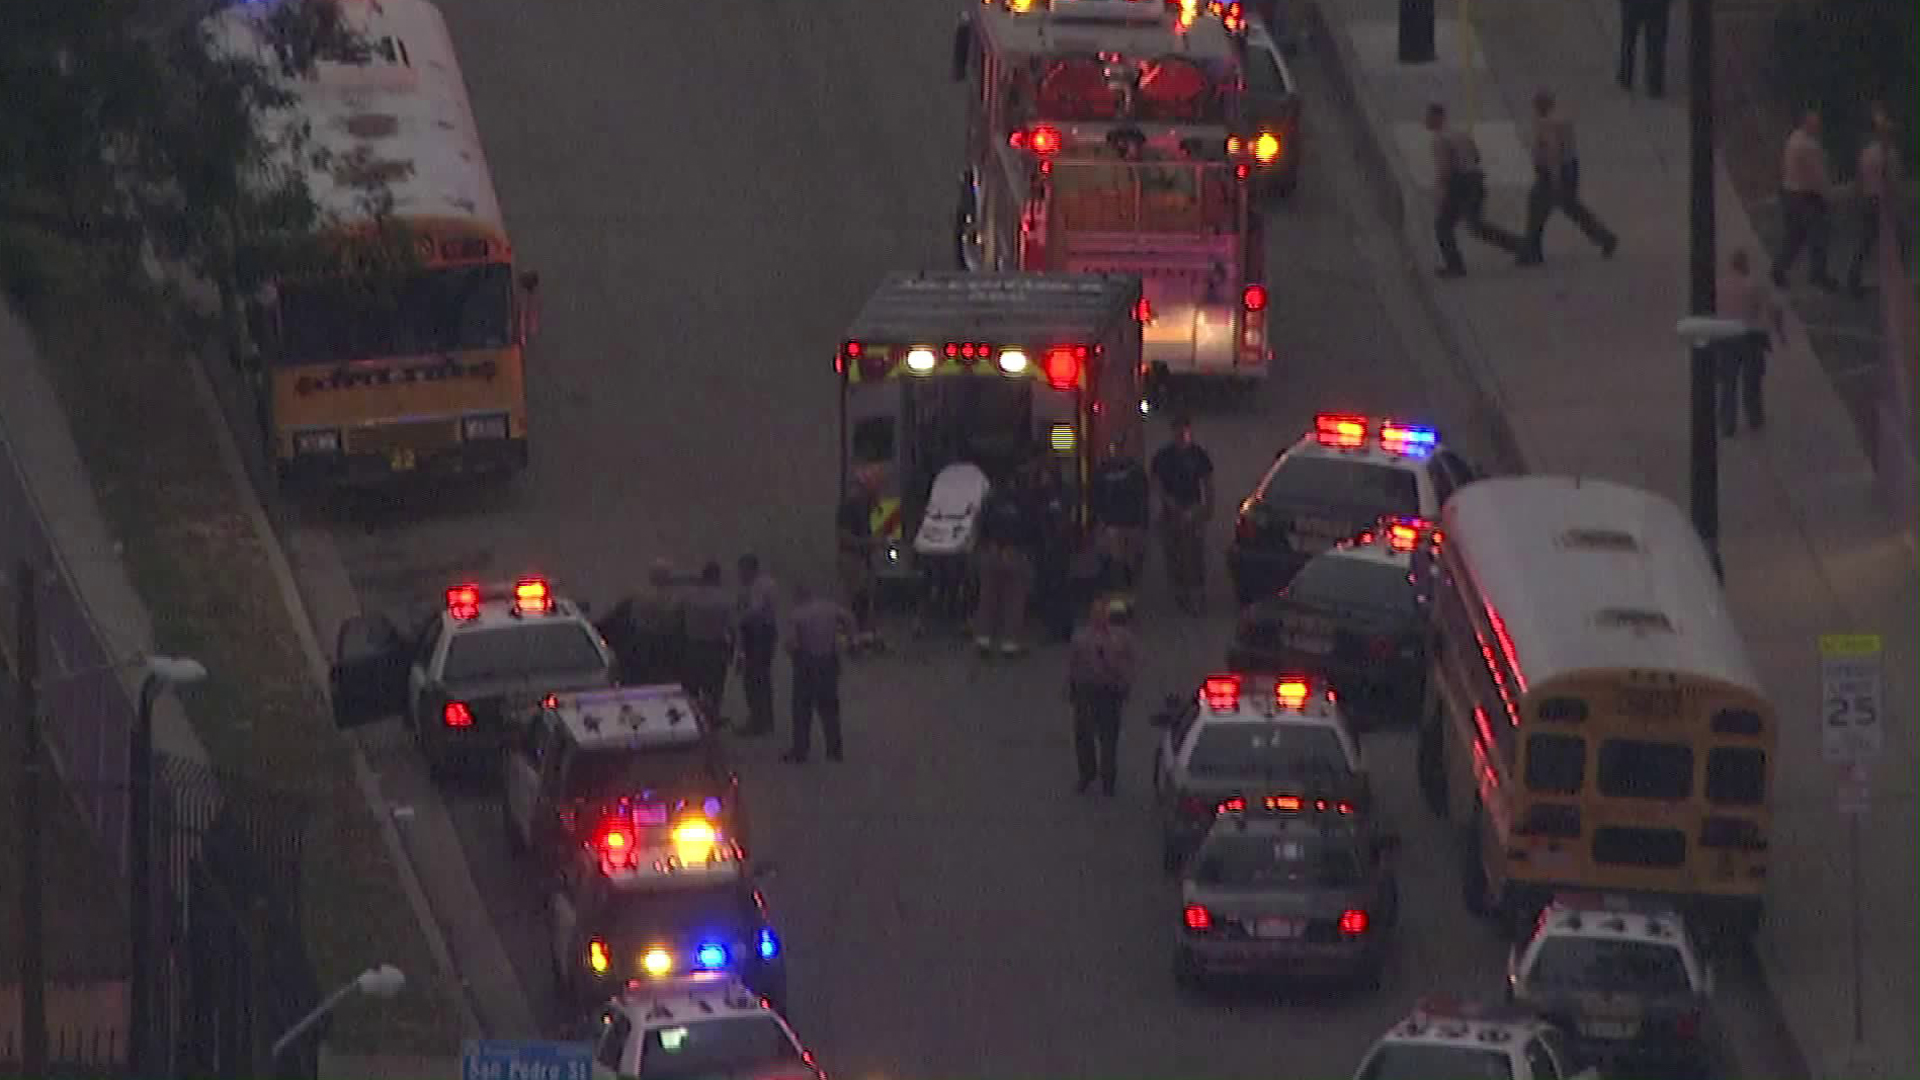 Paramedics and investigators respond to the scene of a deputy-involved shooting in Willowbrook on June 6, 2019. (Credit: KTLA)